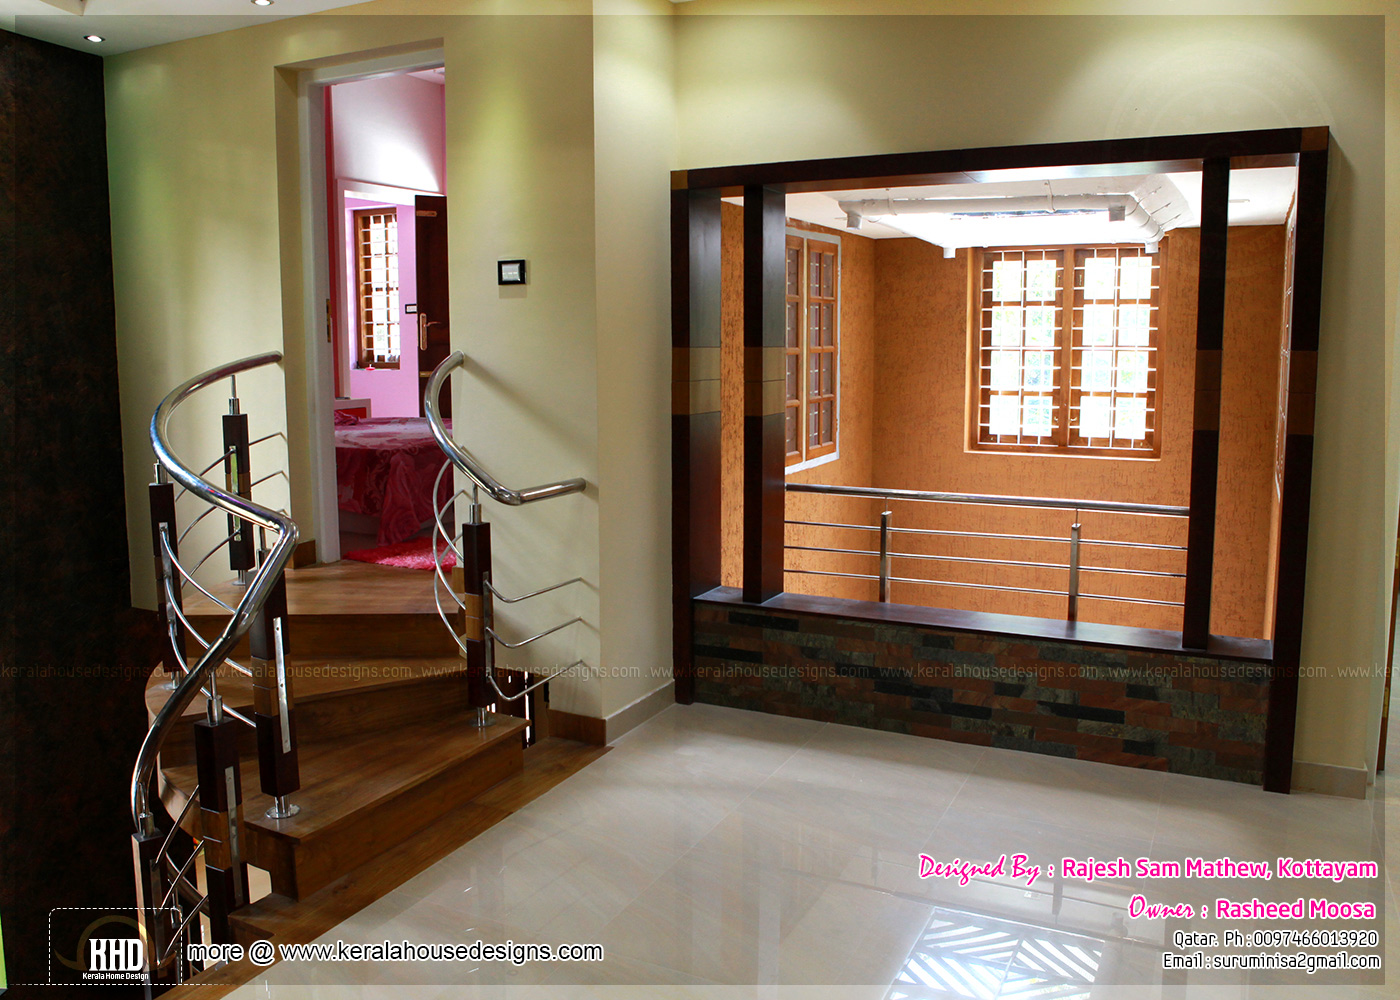 Kerala interior design with photos kerala home design for Kerala home interior designs photos